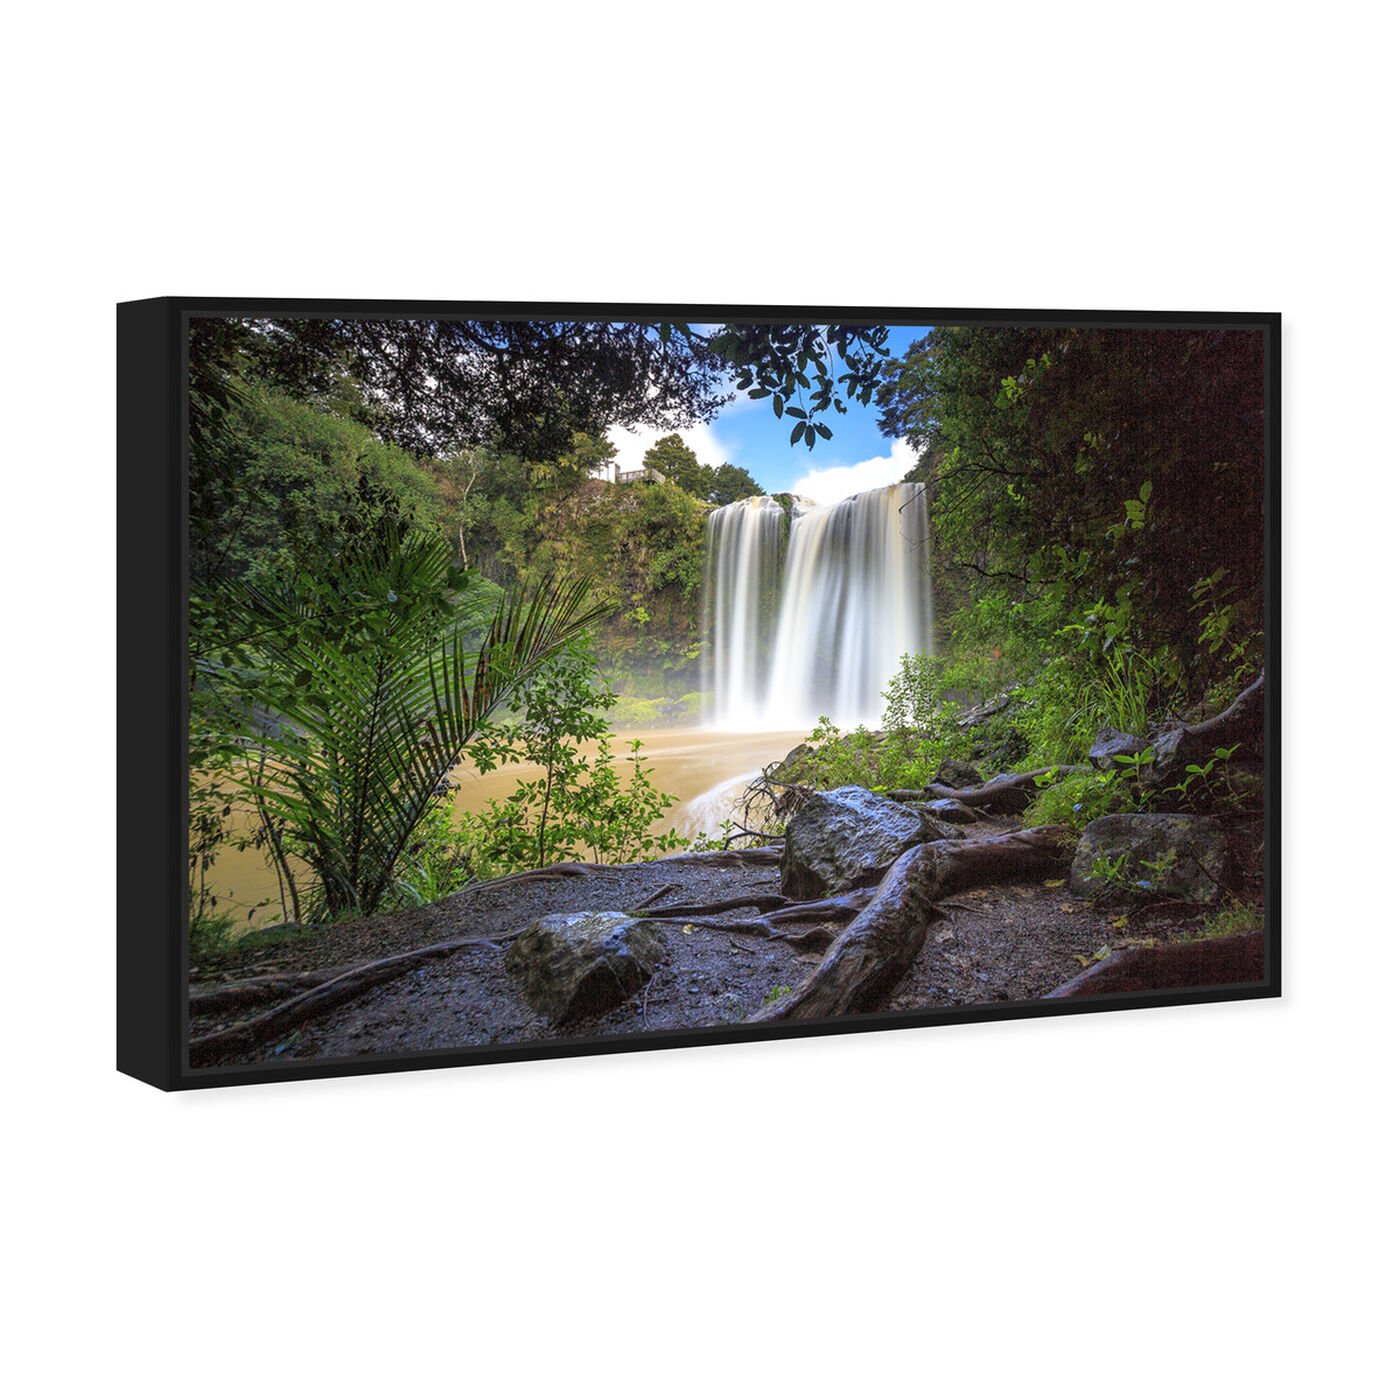 Angled view of Curro Cardenal - Rainforest featuring nature and landscape and forest landscapes art.